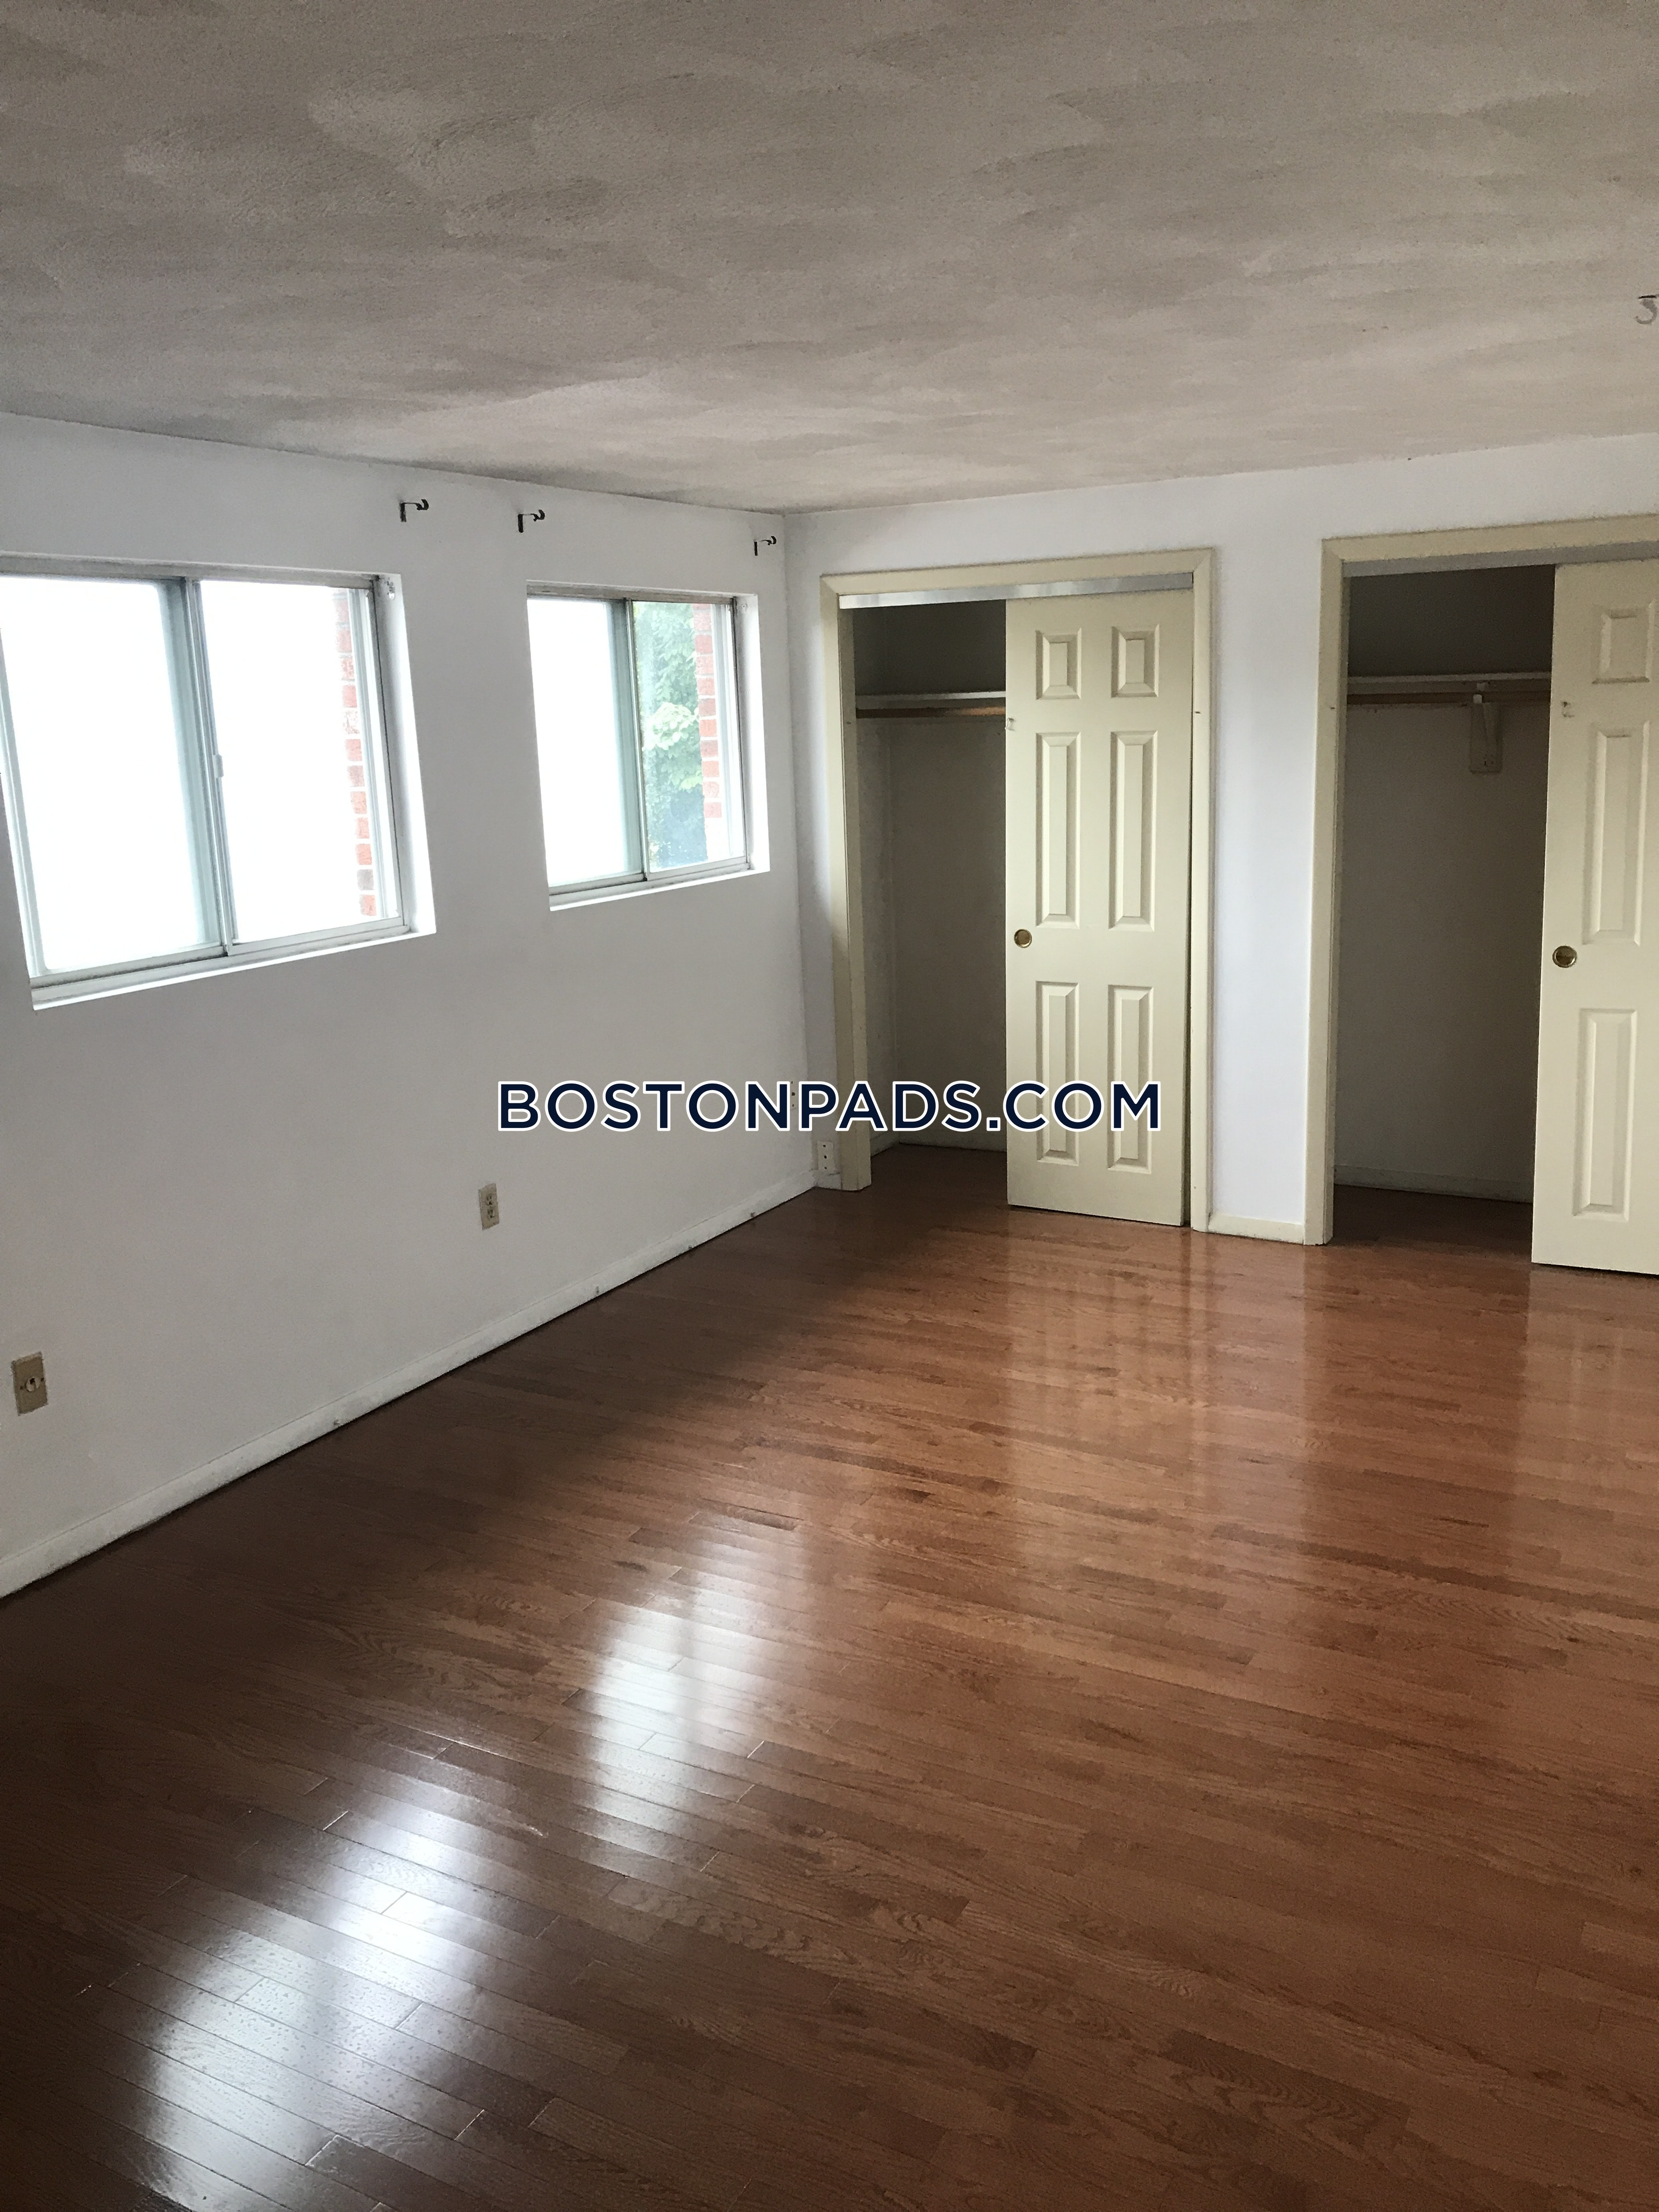 CAMBRIDGE - CENTRAL SQUARE/CAMBRIDGEPORT - $4,700